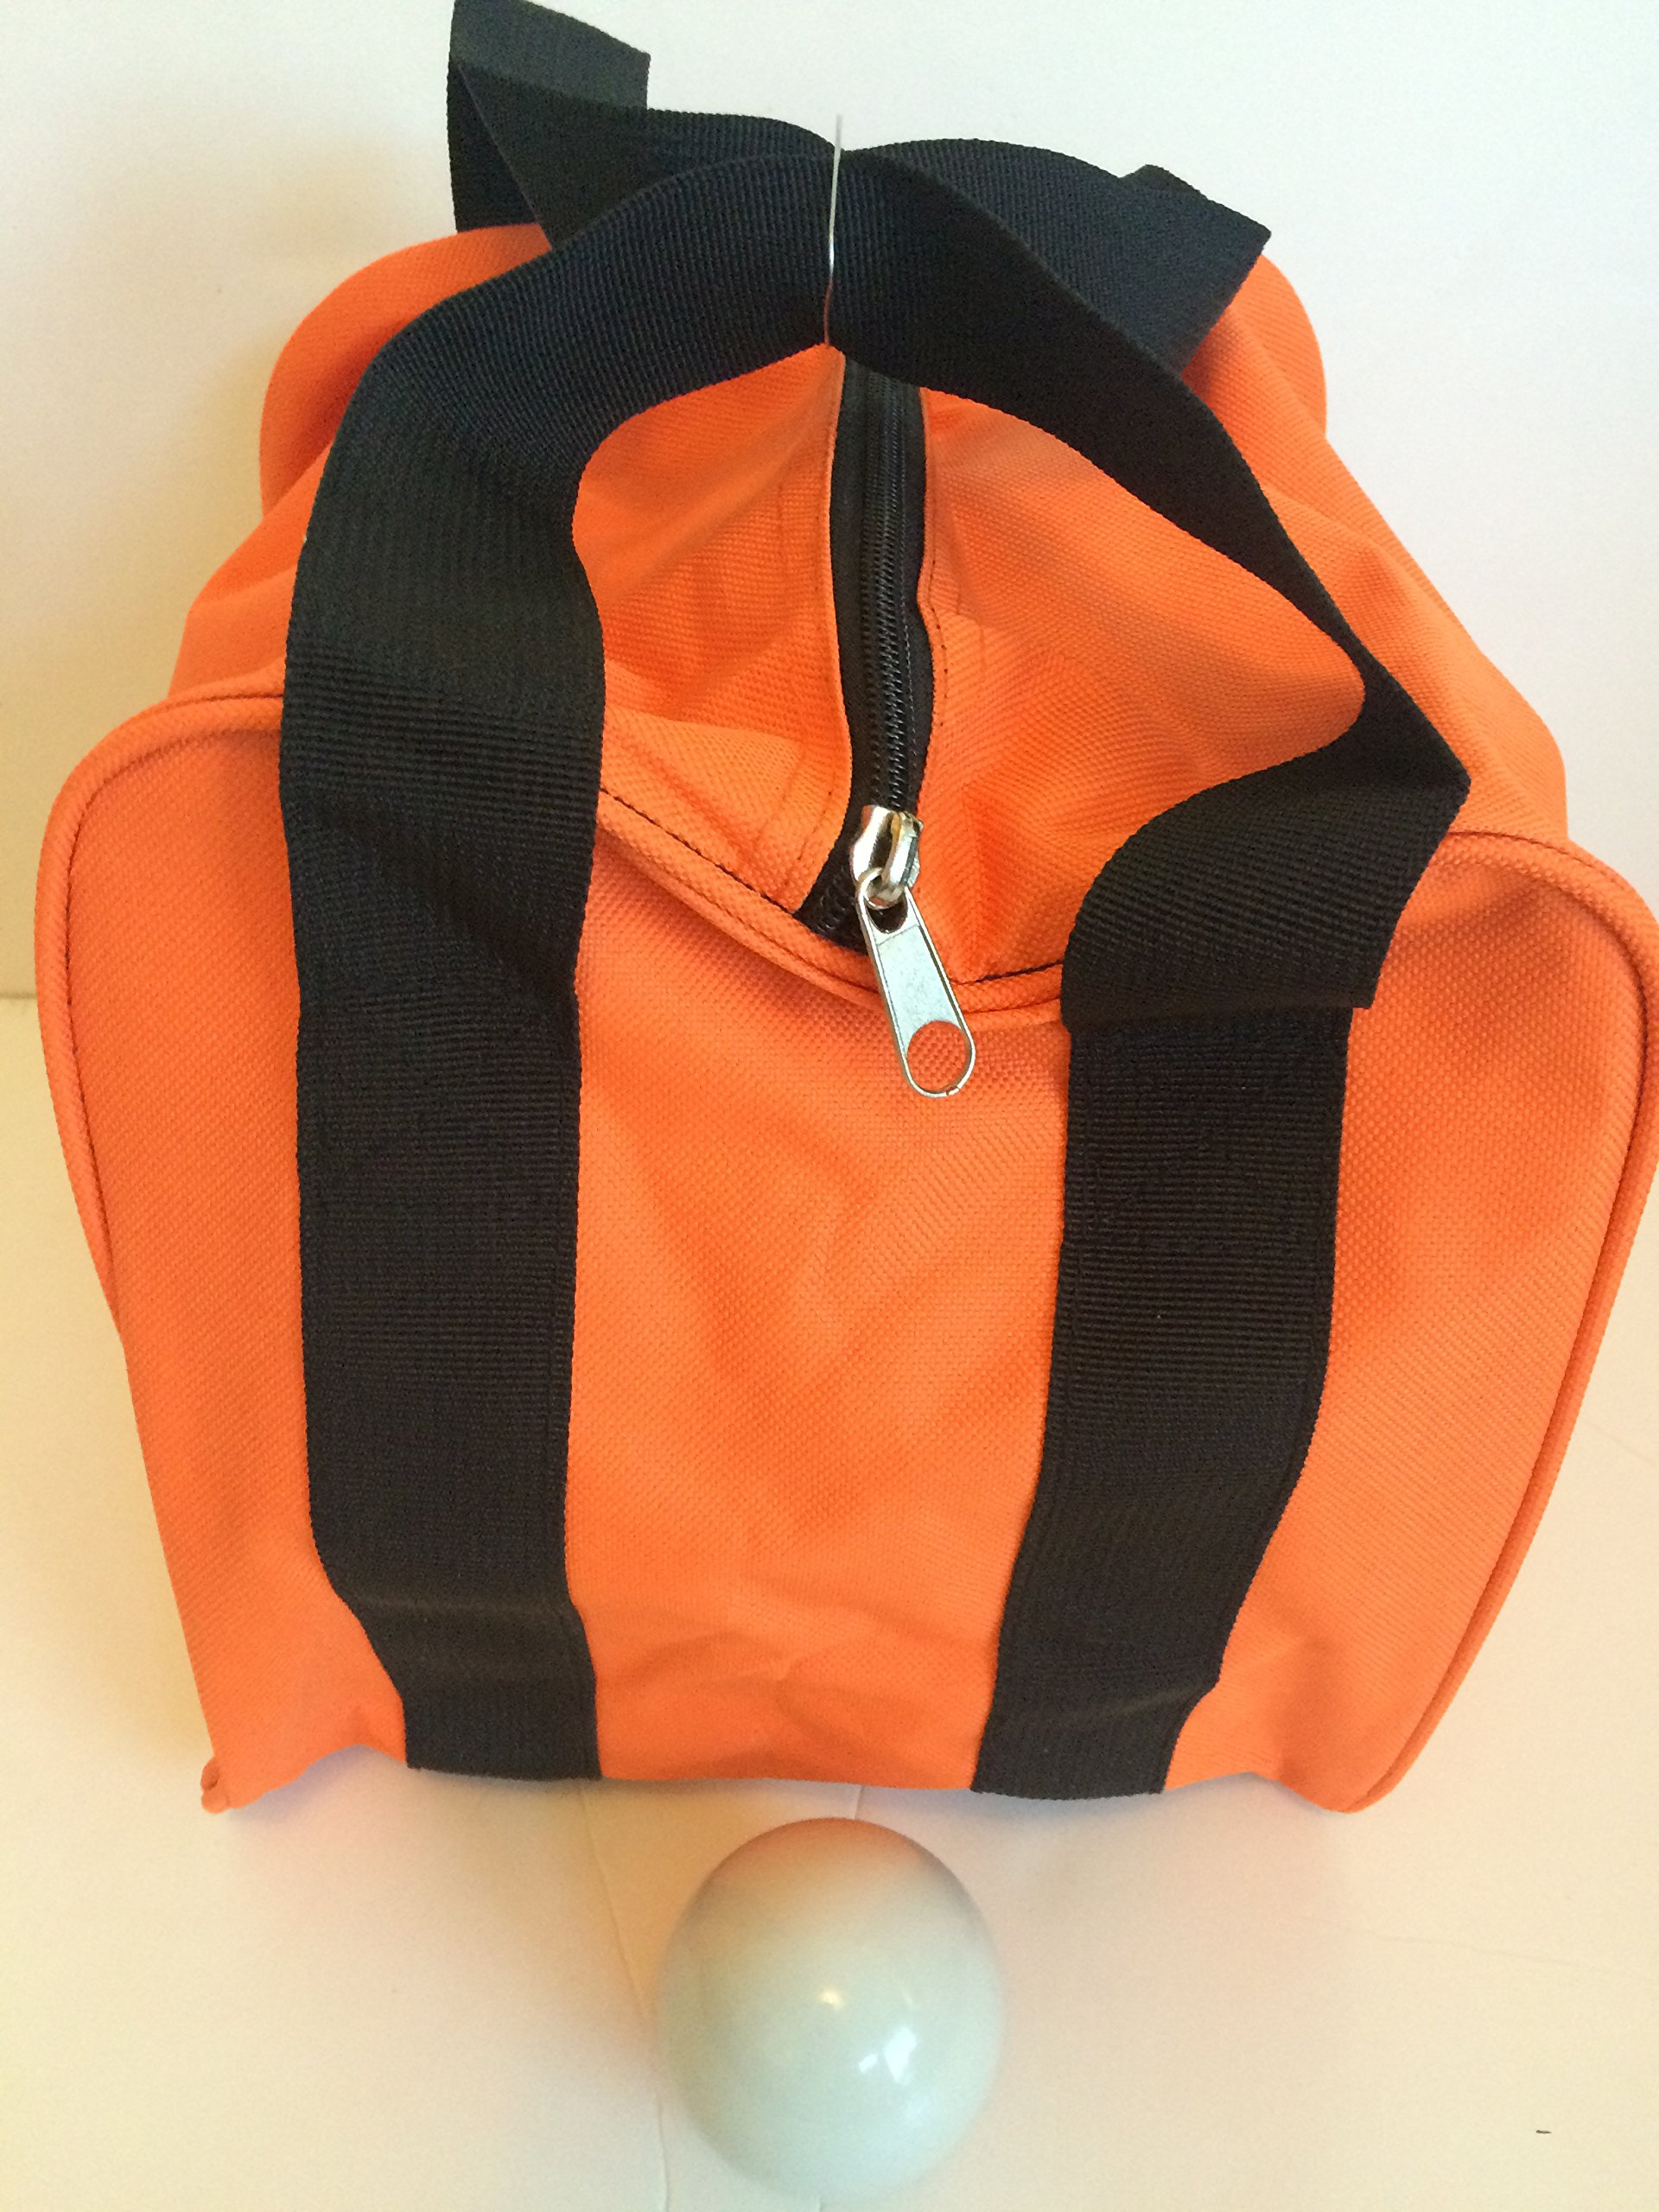 Unique Bocce Accessories Package - Extra Heavy Duty Nylon Bocce Bag (Orange with Black Handles) and White pallina by BuyBocceBalls